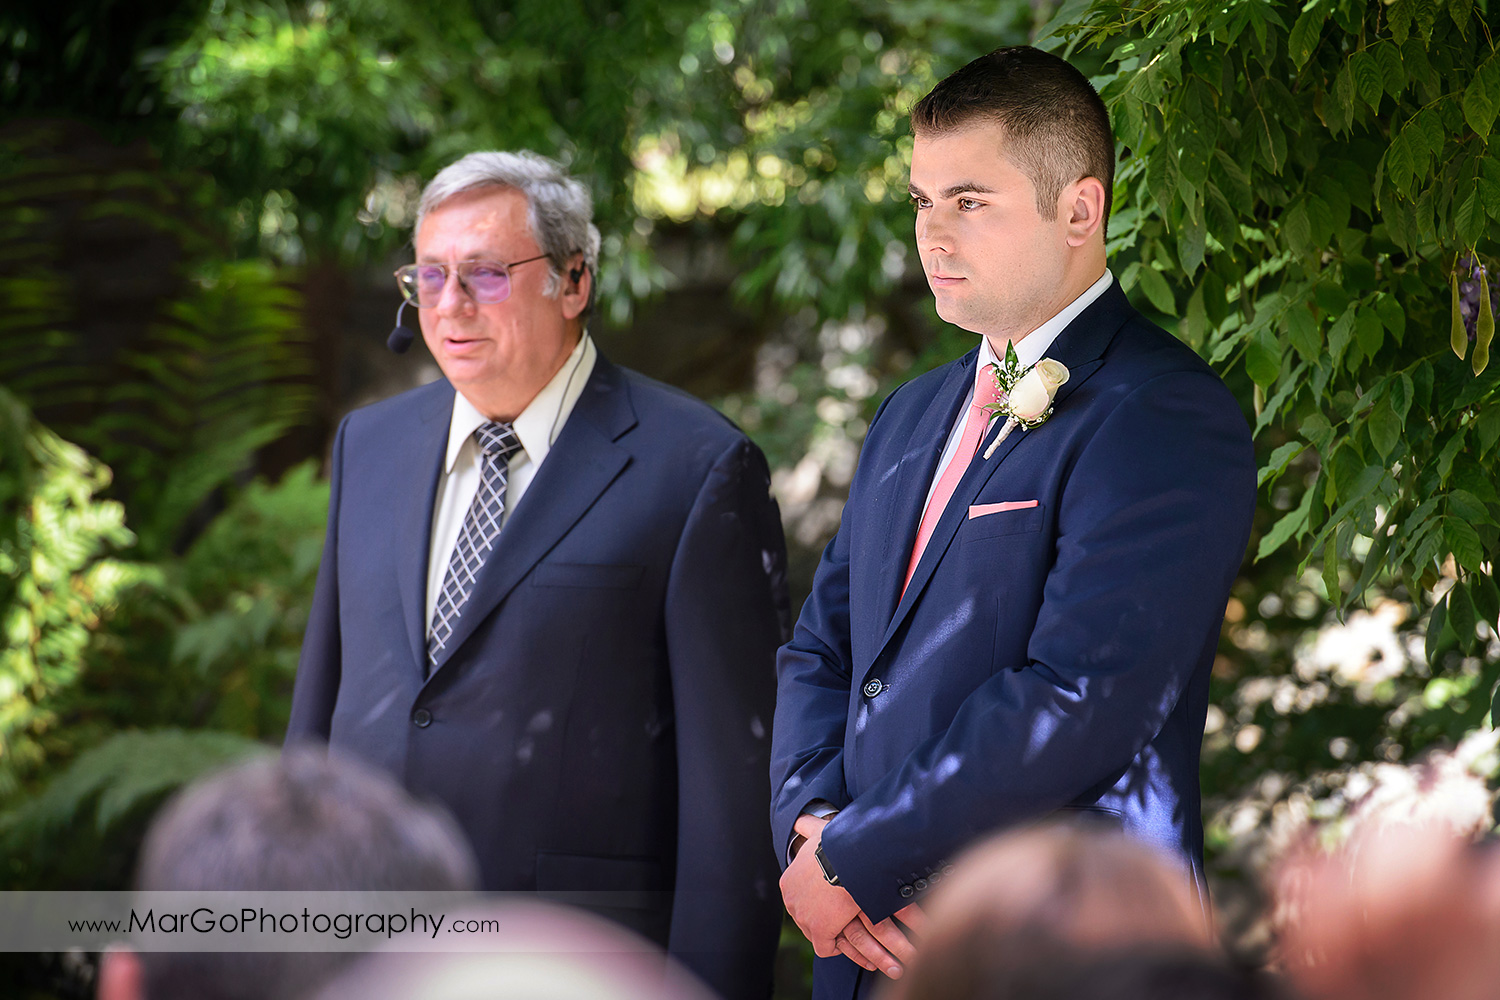 groom waiting for bride walking down the aisle during wedding ceremony at Saratoga Foothill Club